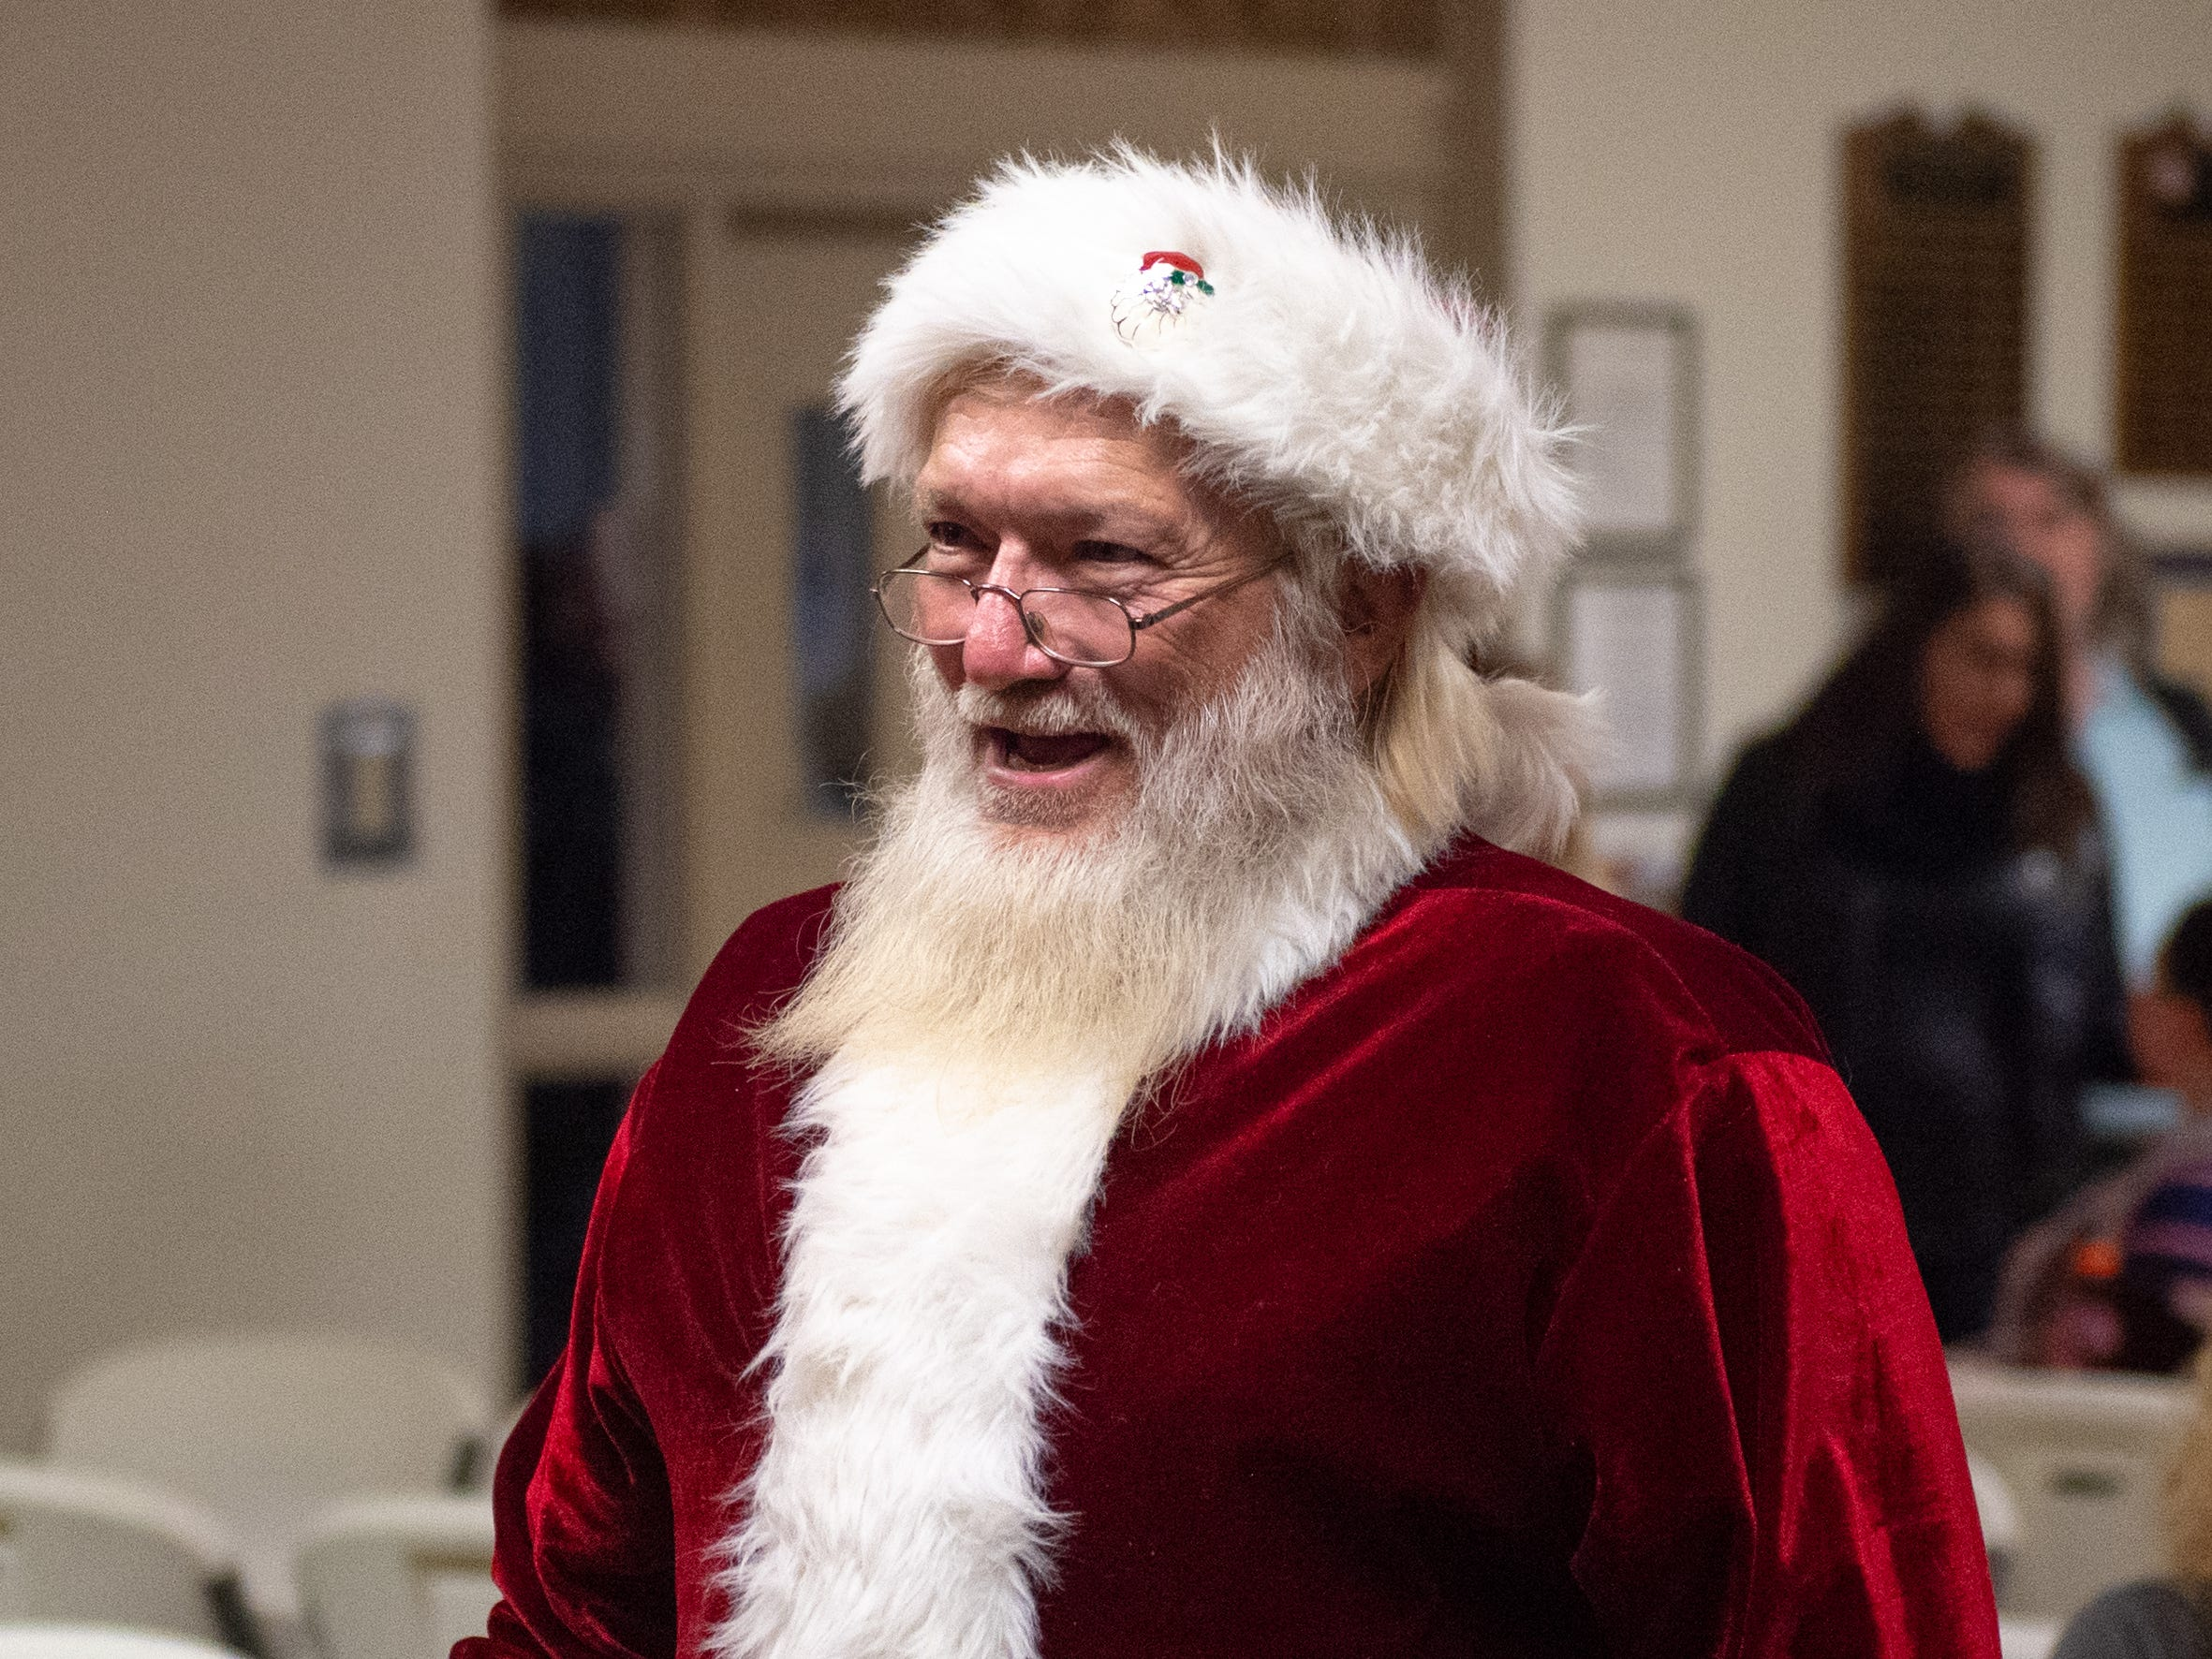 Santa Claus prepares to meet all of the good little York girls and boys for pictures during the Annual Evening with Santa, December 13, 2018.